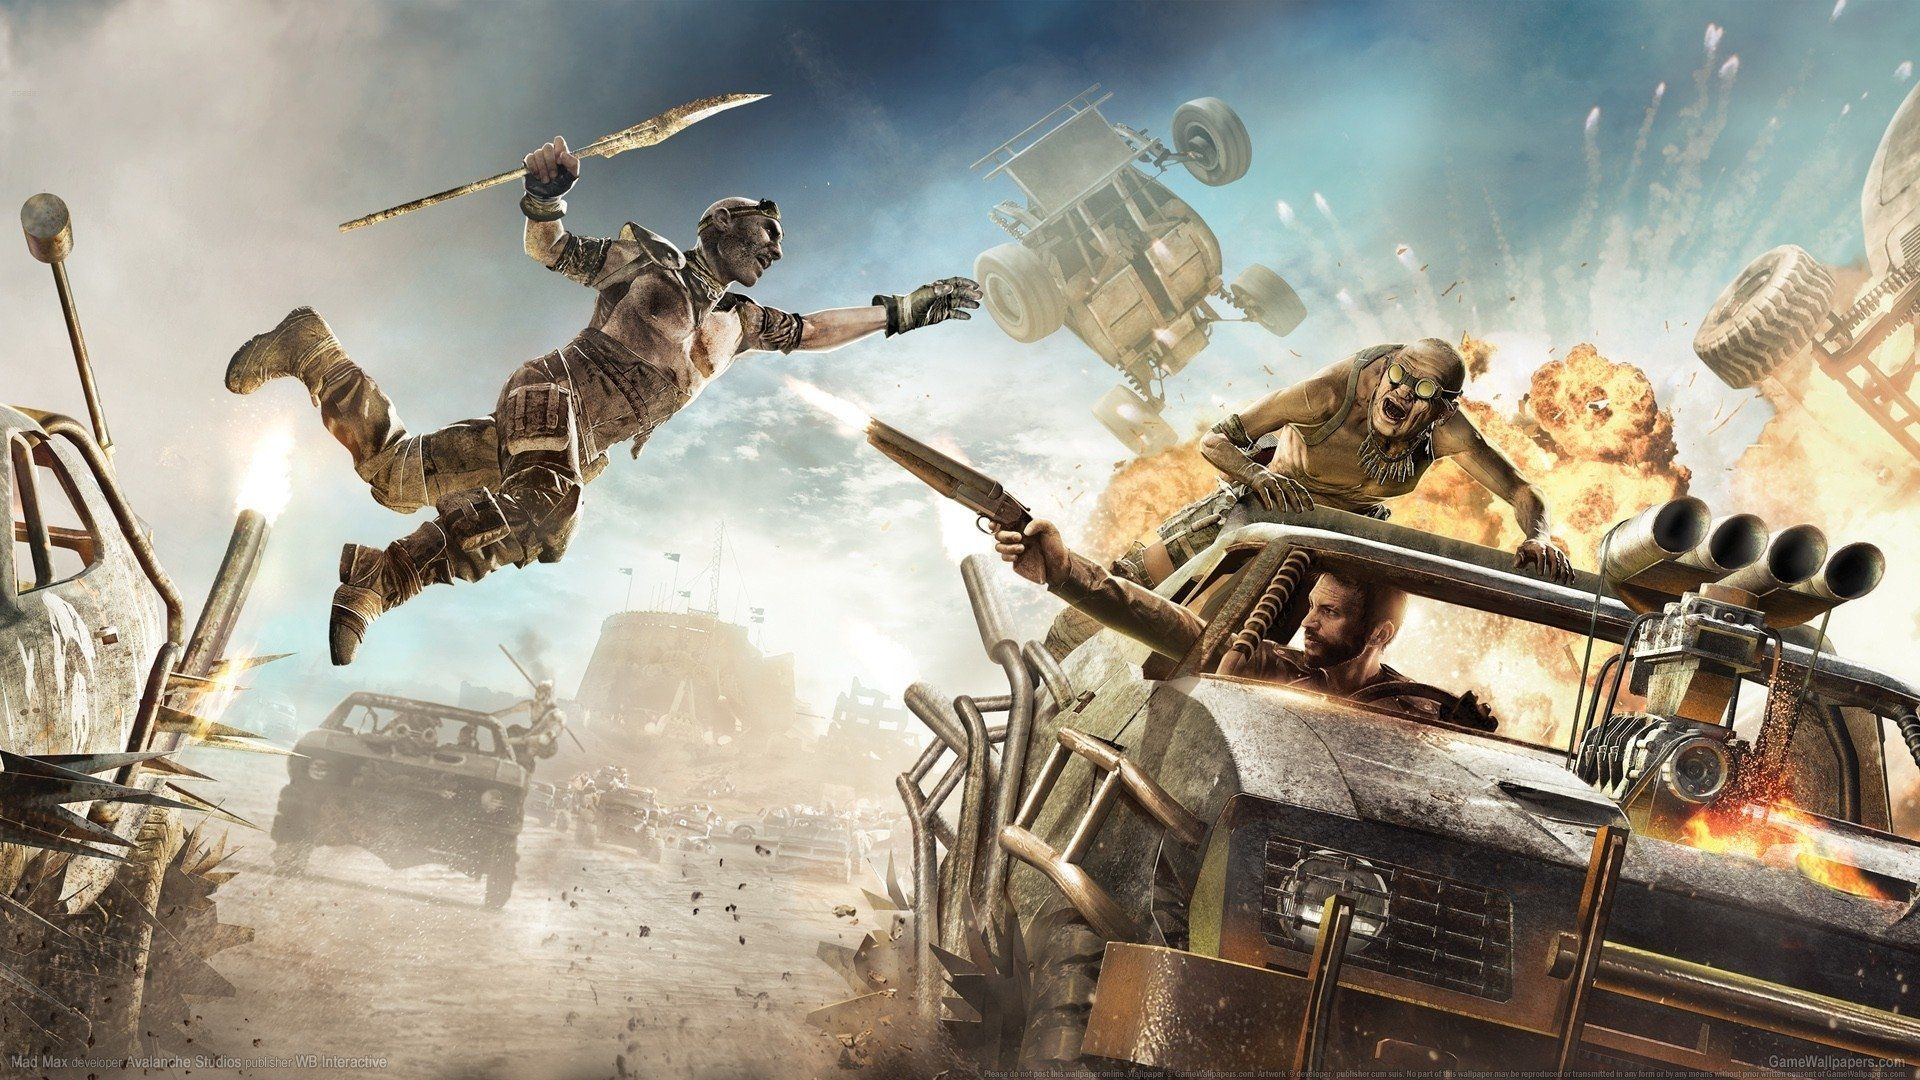 Wallpaper Action Movie Explosion Background Mad Max Wallpaper Backgrounds Mad Max Fury Road